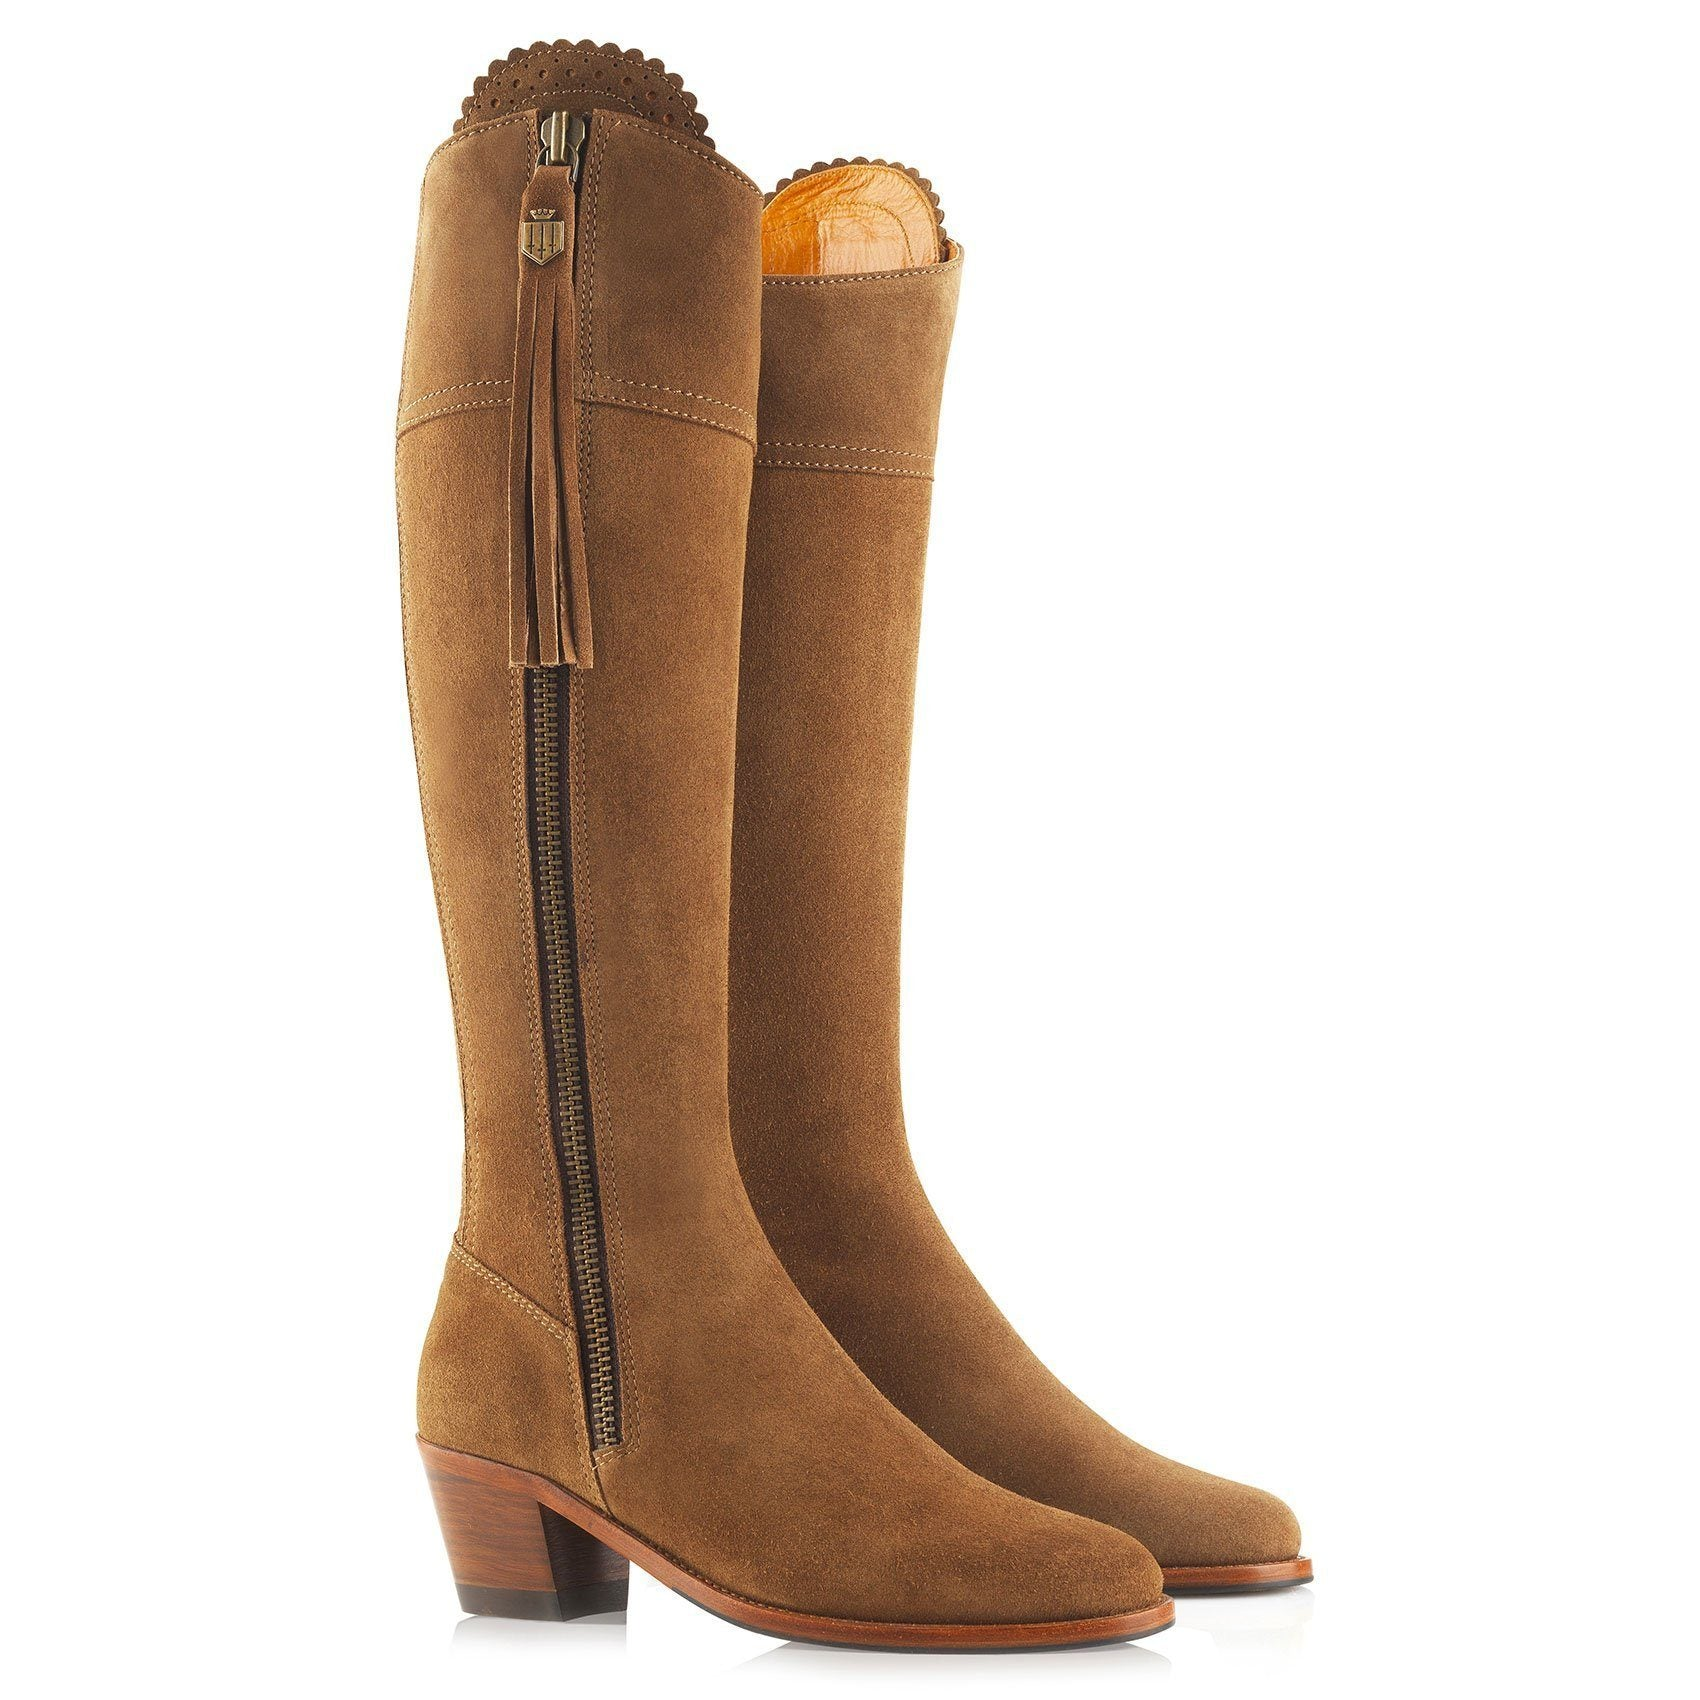 Regina Suede Heeled Boot, tan/lysebrun